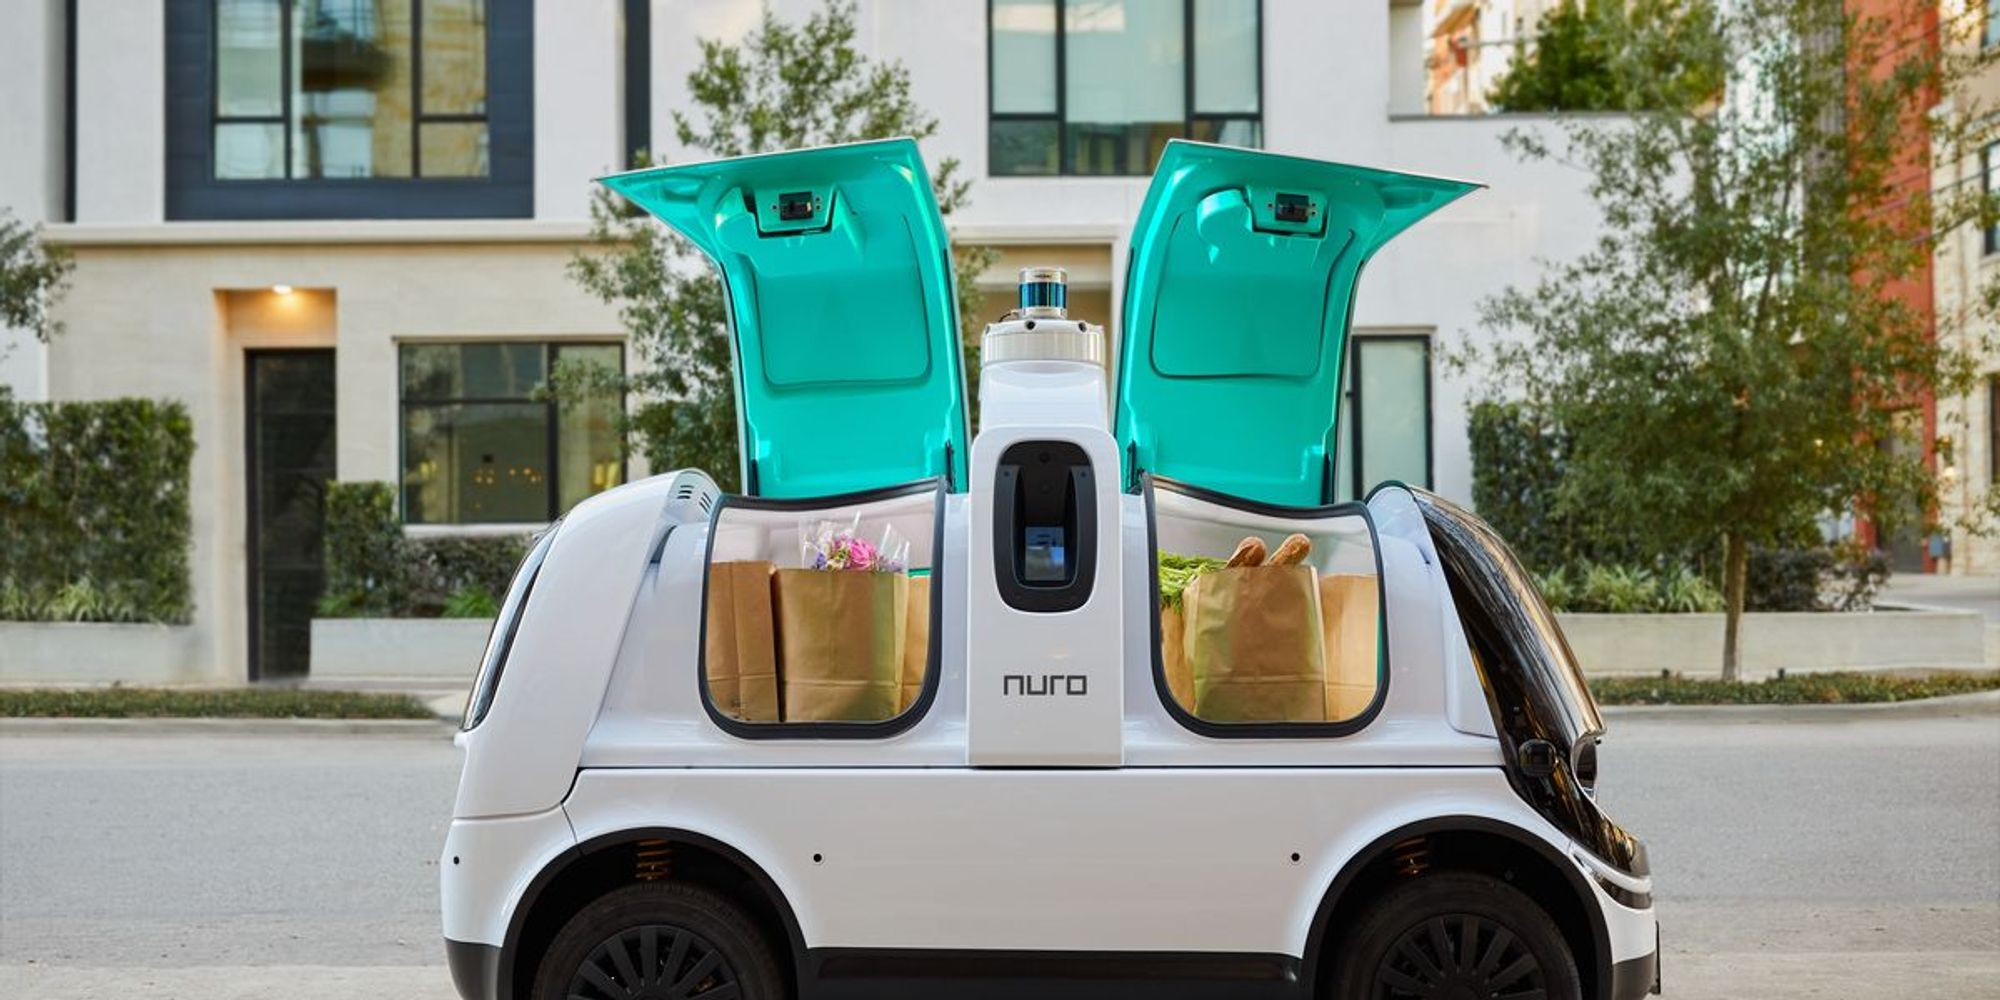 'It's truly contactless': In a new world, Nuro's delivery pods gain new virtue